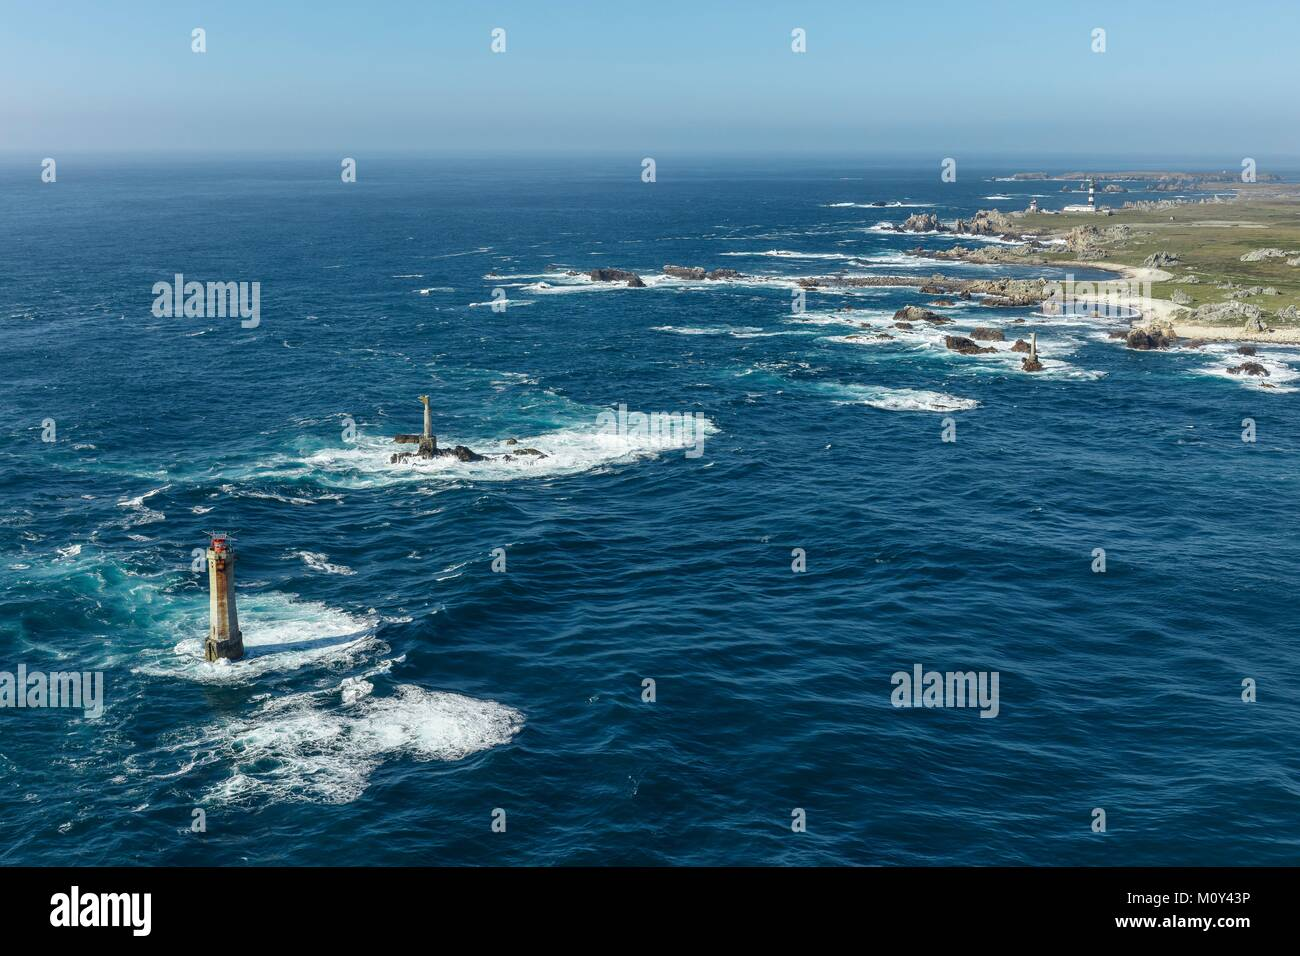 France,Finistere,Ouessant island,Nividic lighthouse before Pointe de Pern (aerial view) - Stock Image